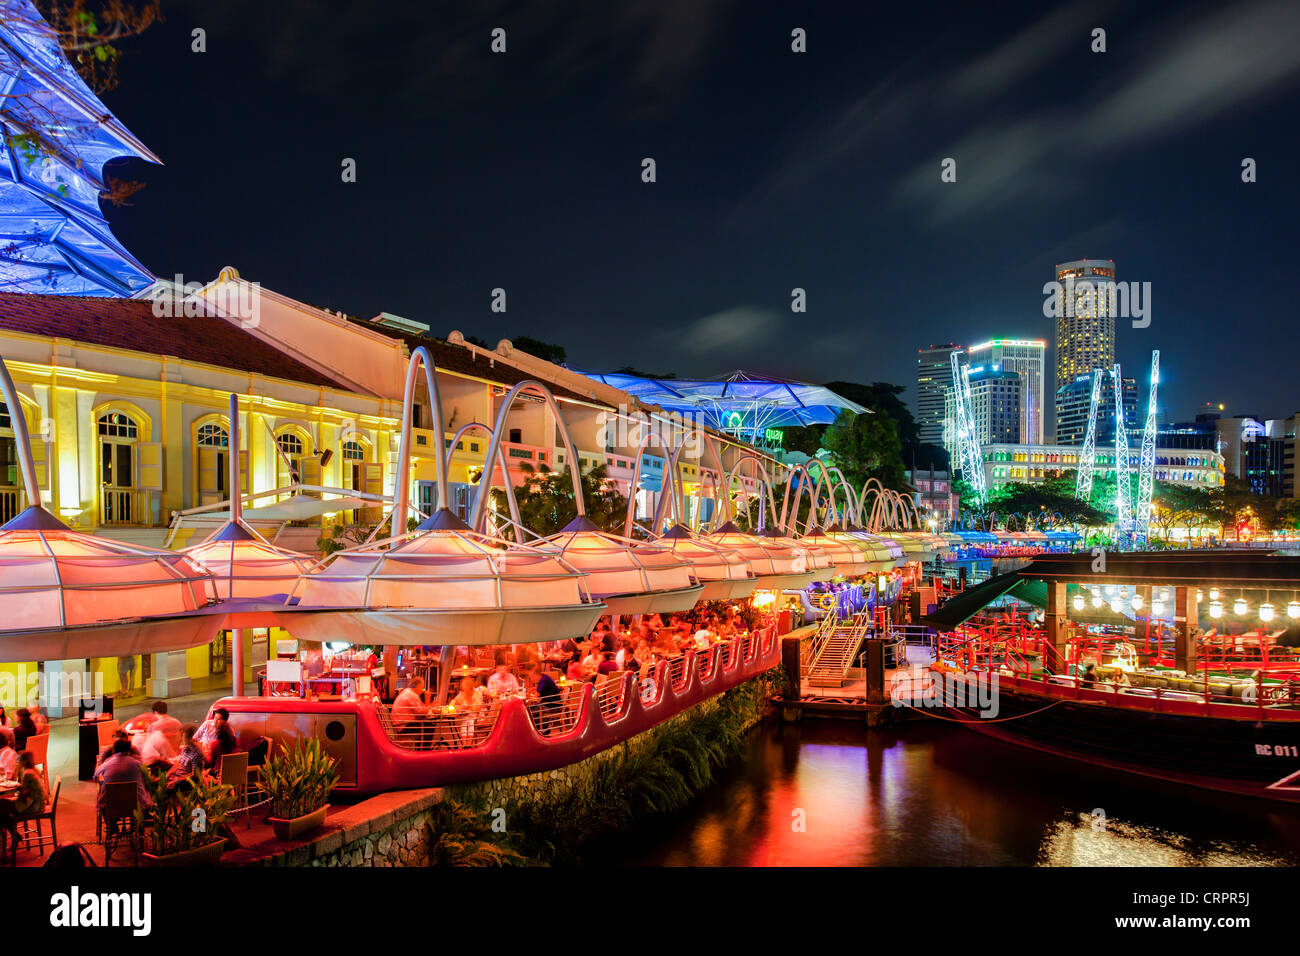 South East Asia, Singapore, The Entertainment district of Clarke Quay, the Singapore river and City Skyline - Stock Image